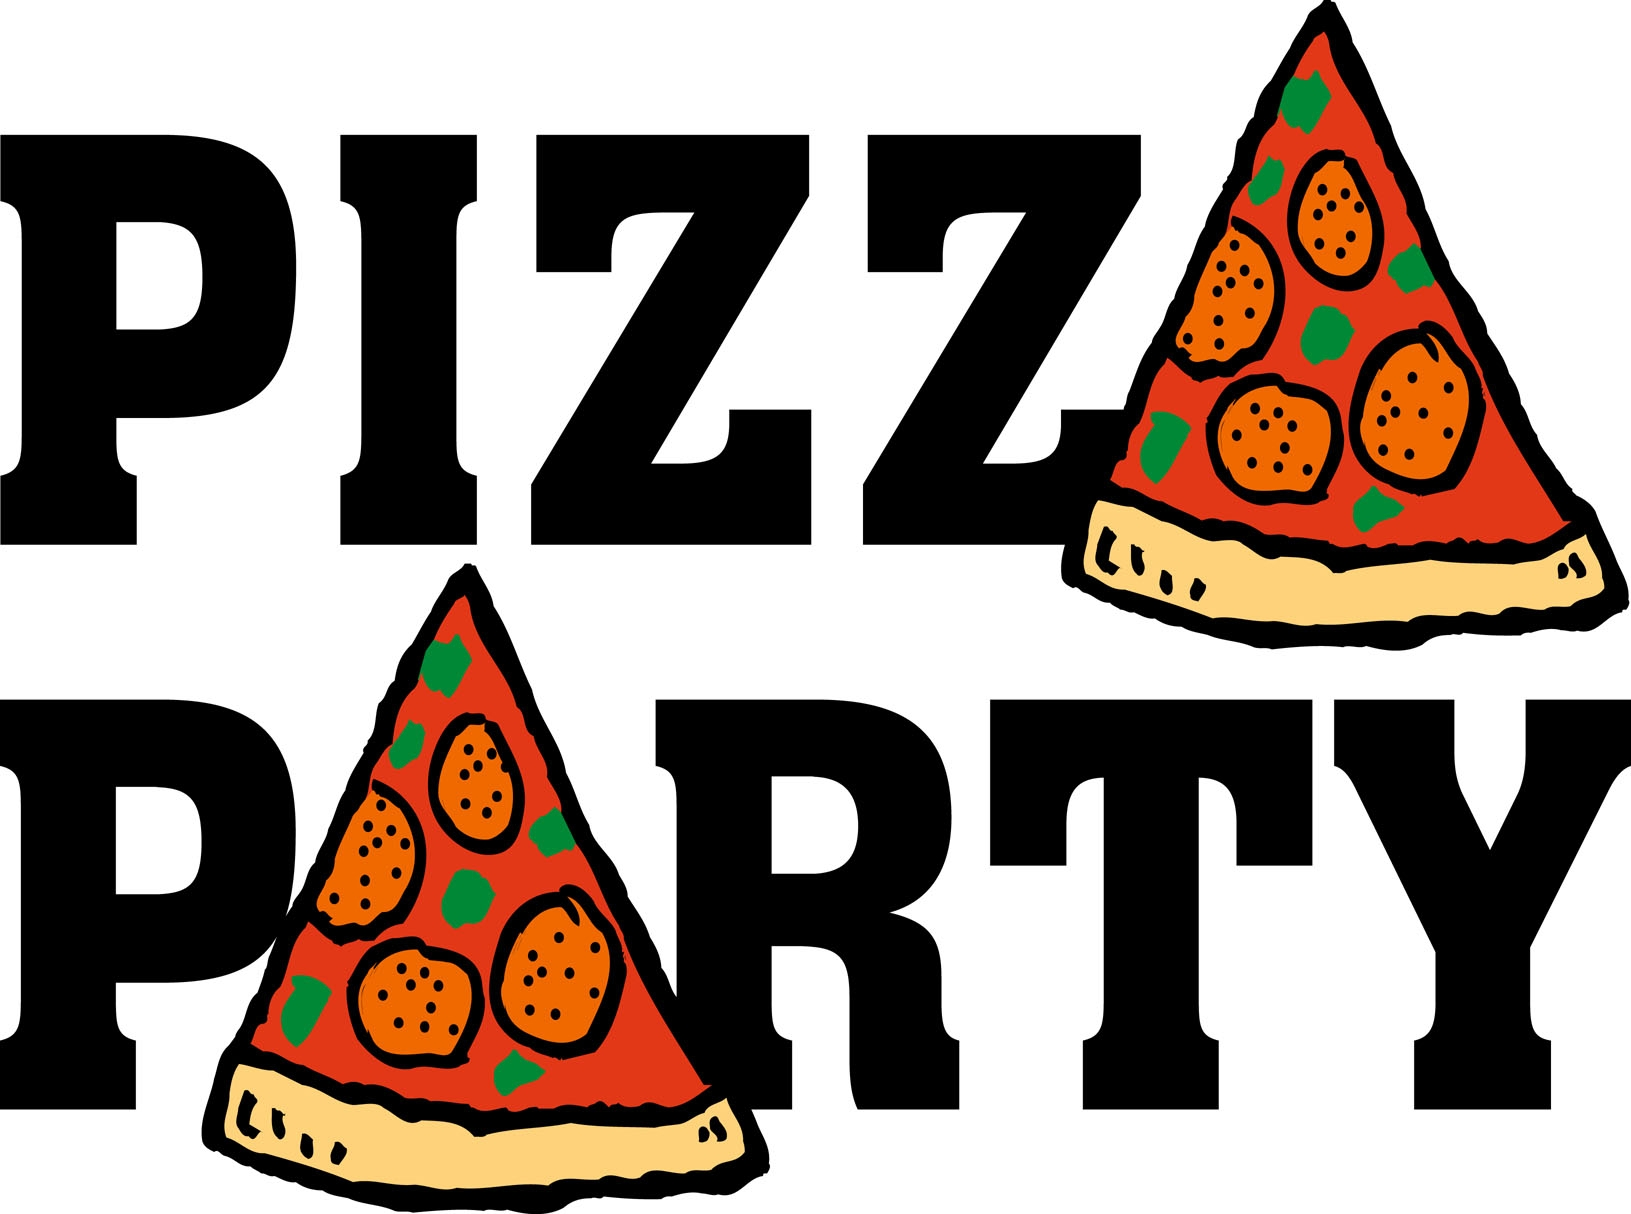 Pizza clipart banner Clipart Party Party Banner Clipart